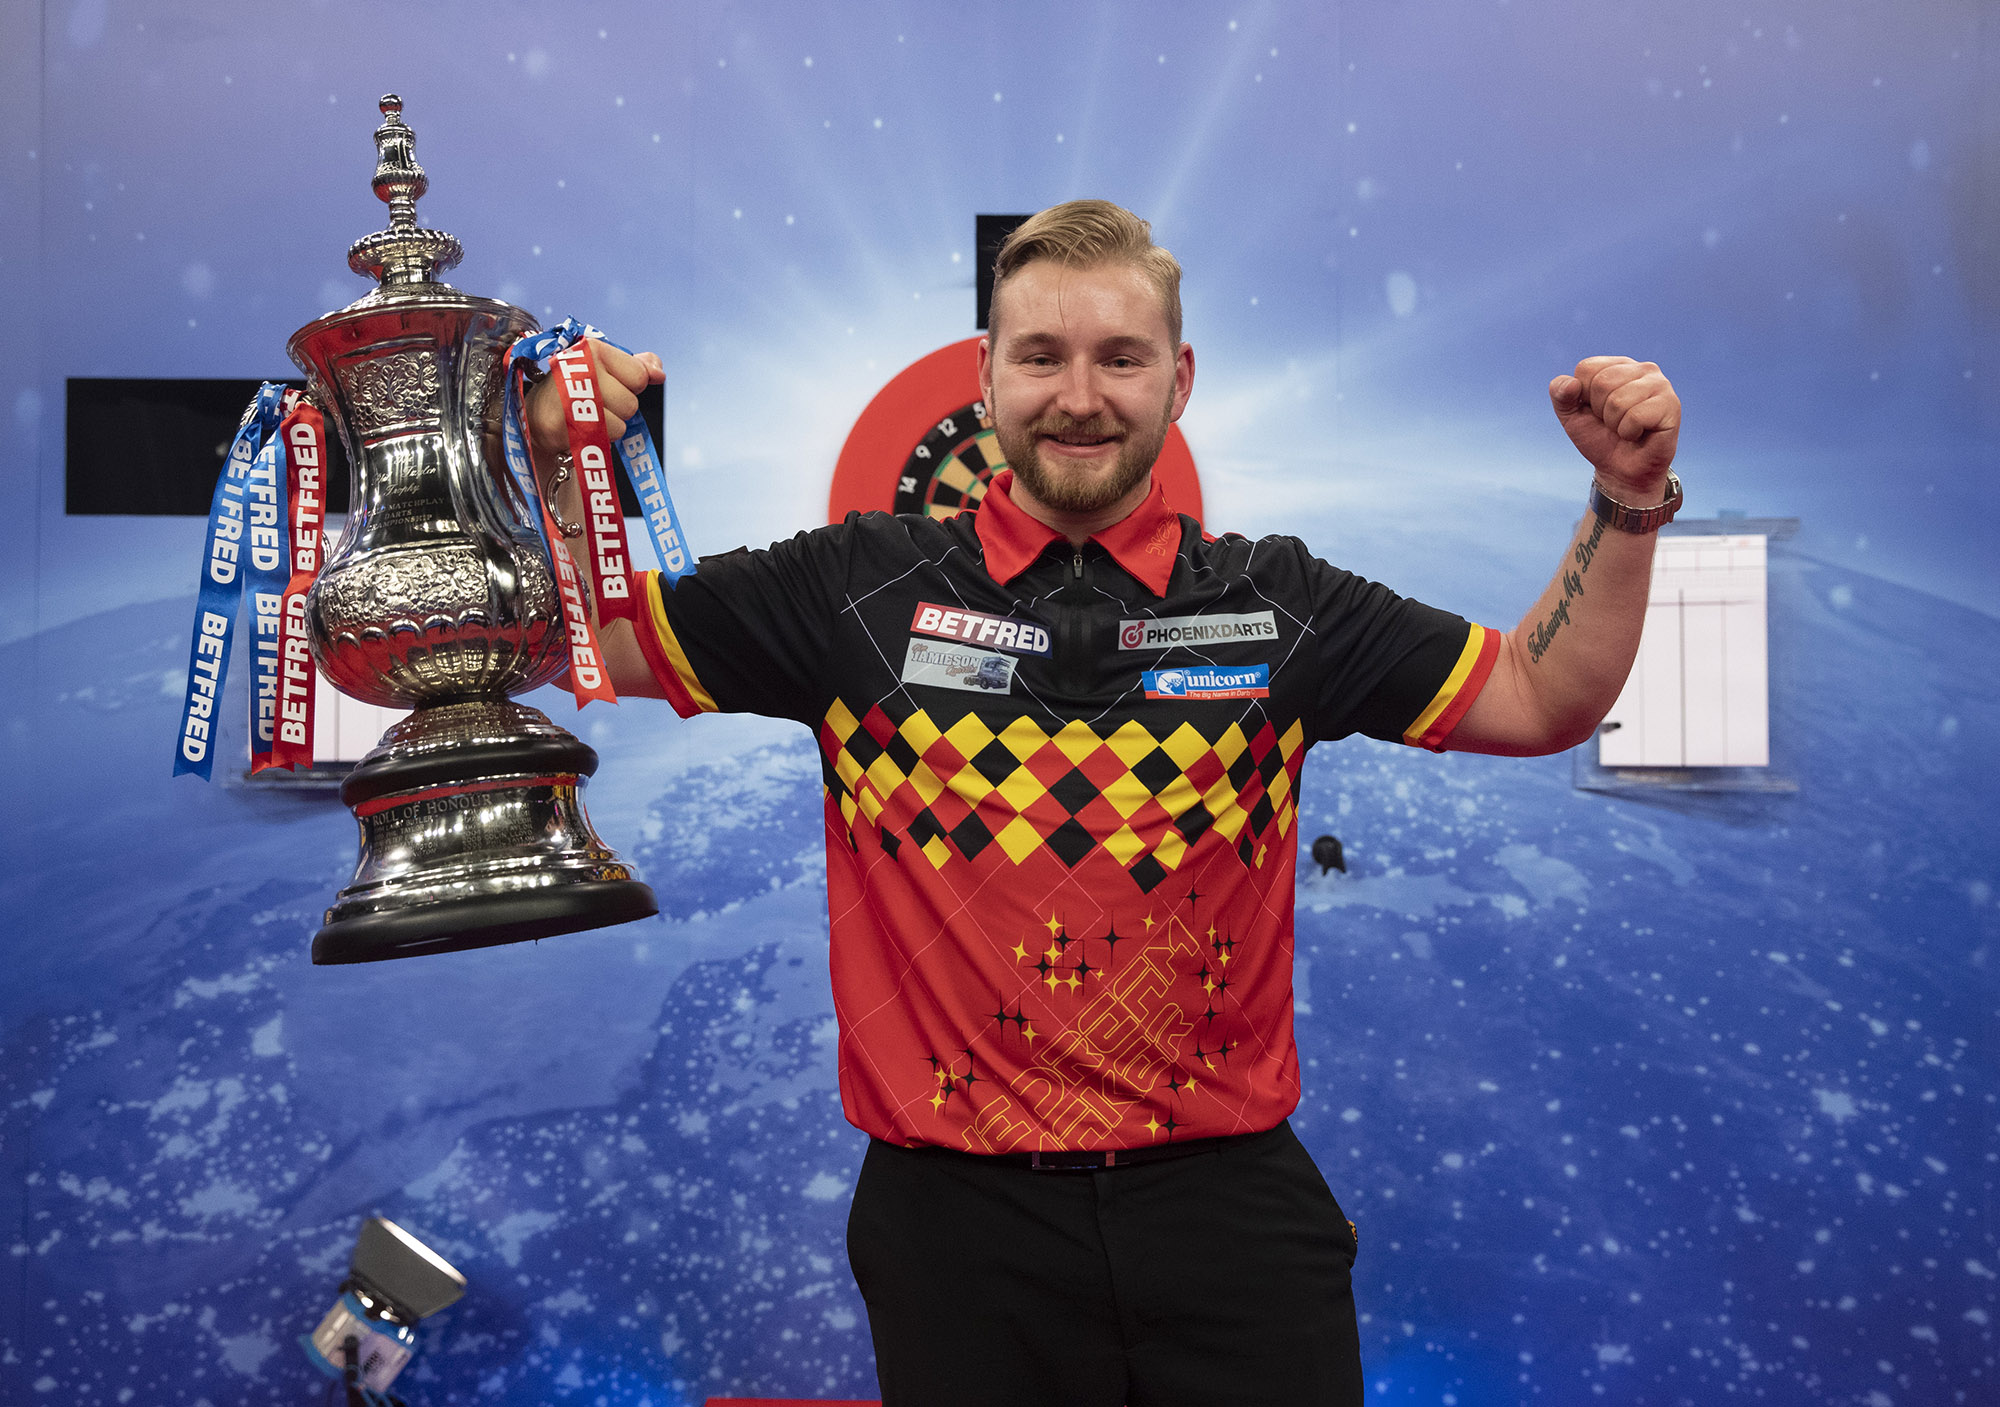 Incredible Dimitri crowned World Matchplay Champion!